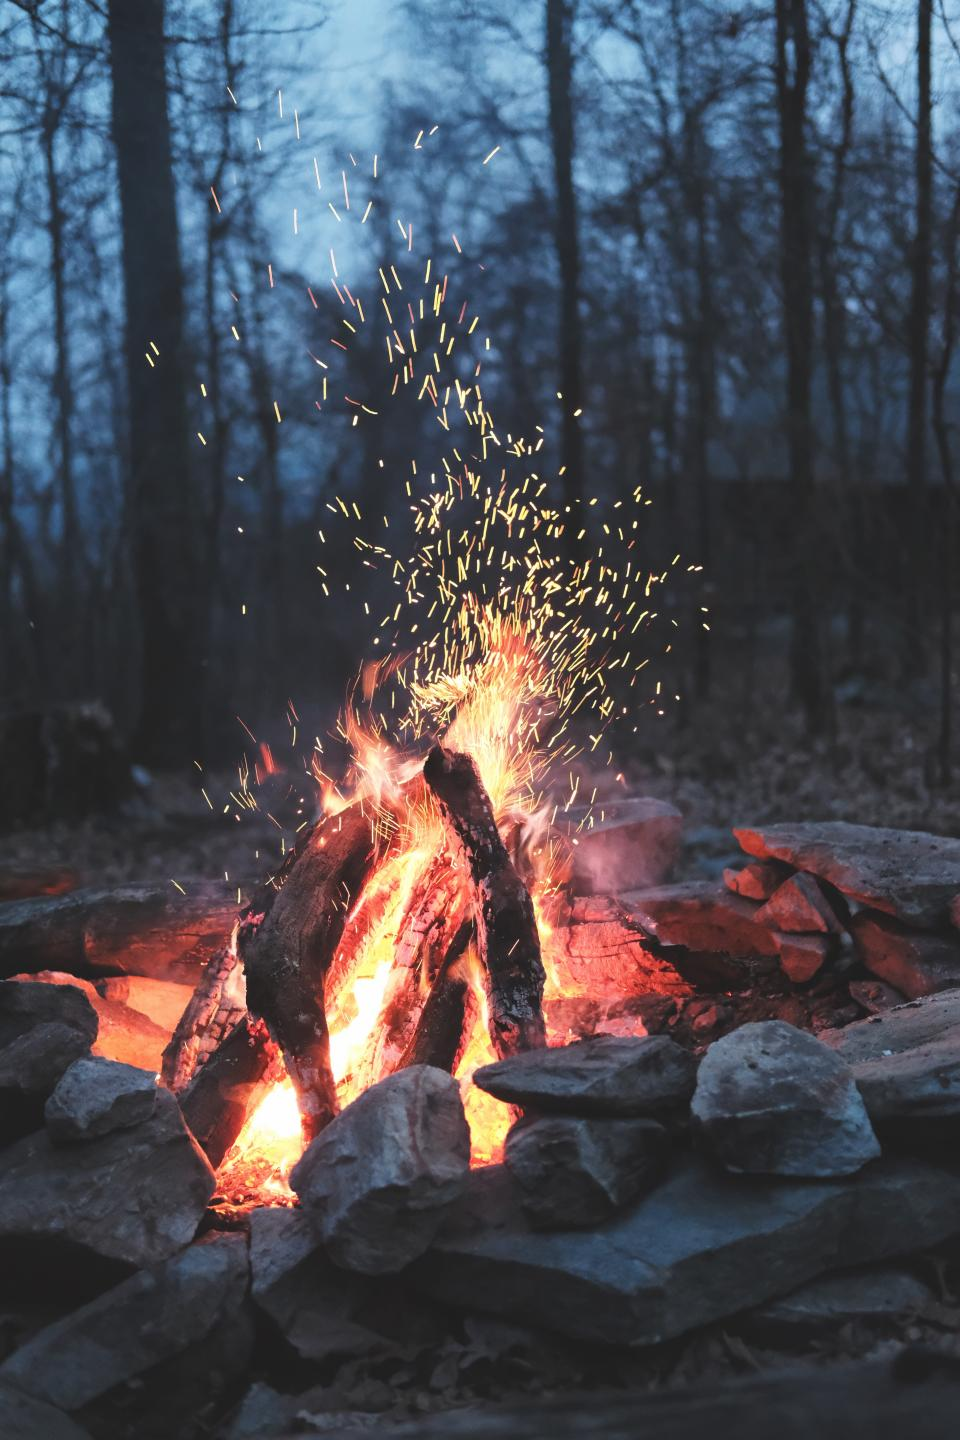 nature fire bonfire camp outdoor woods forest spark stone wood